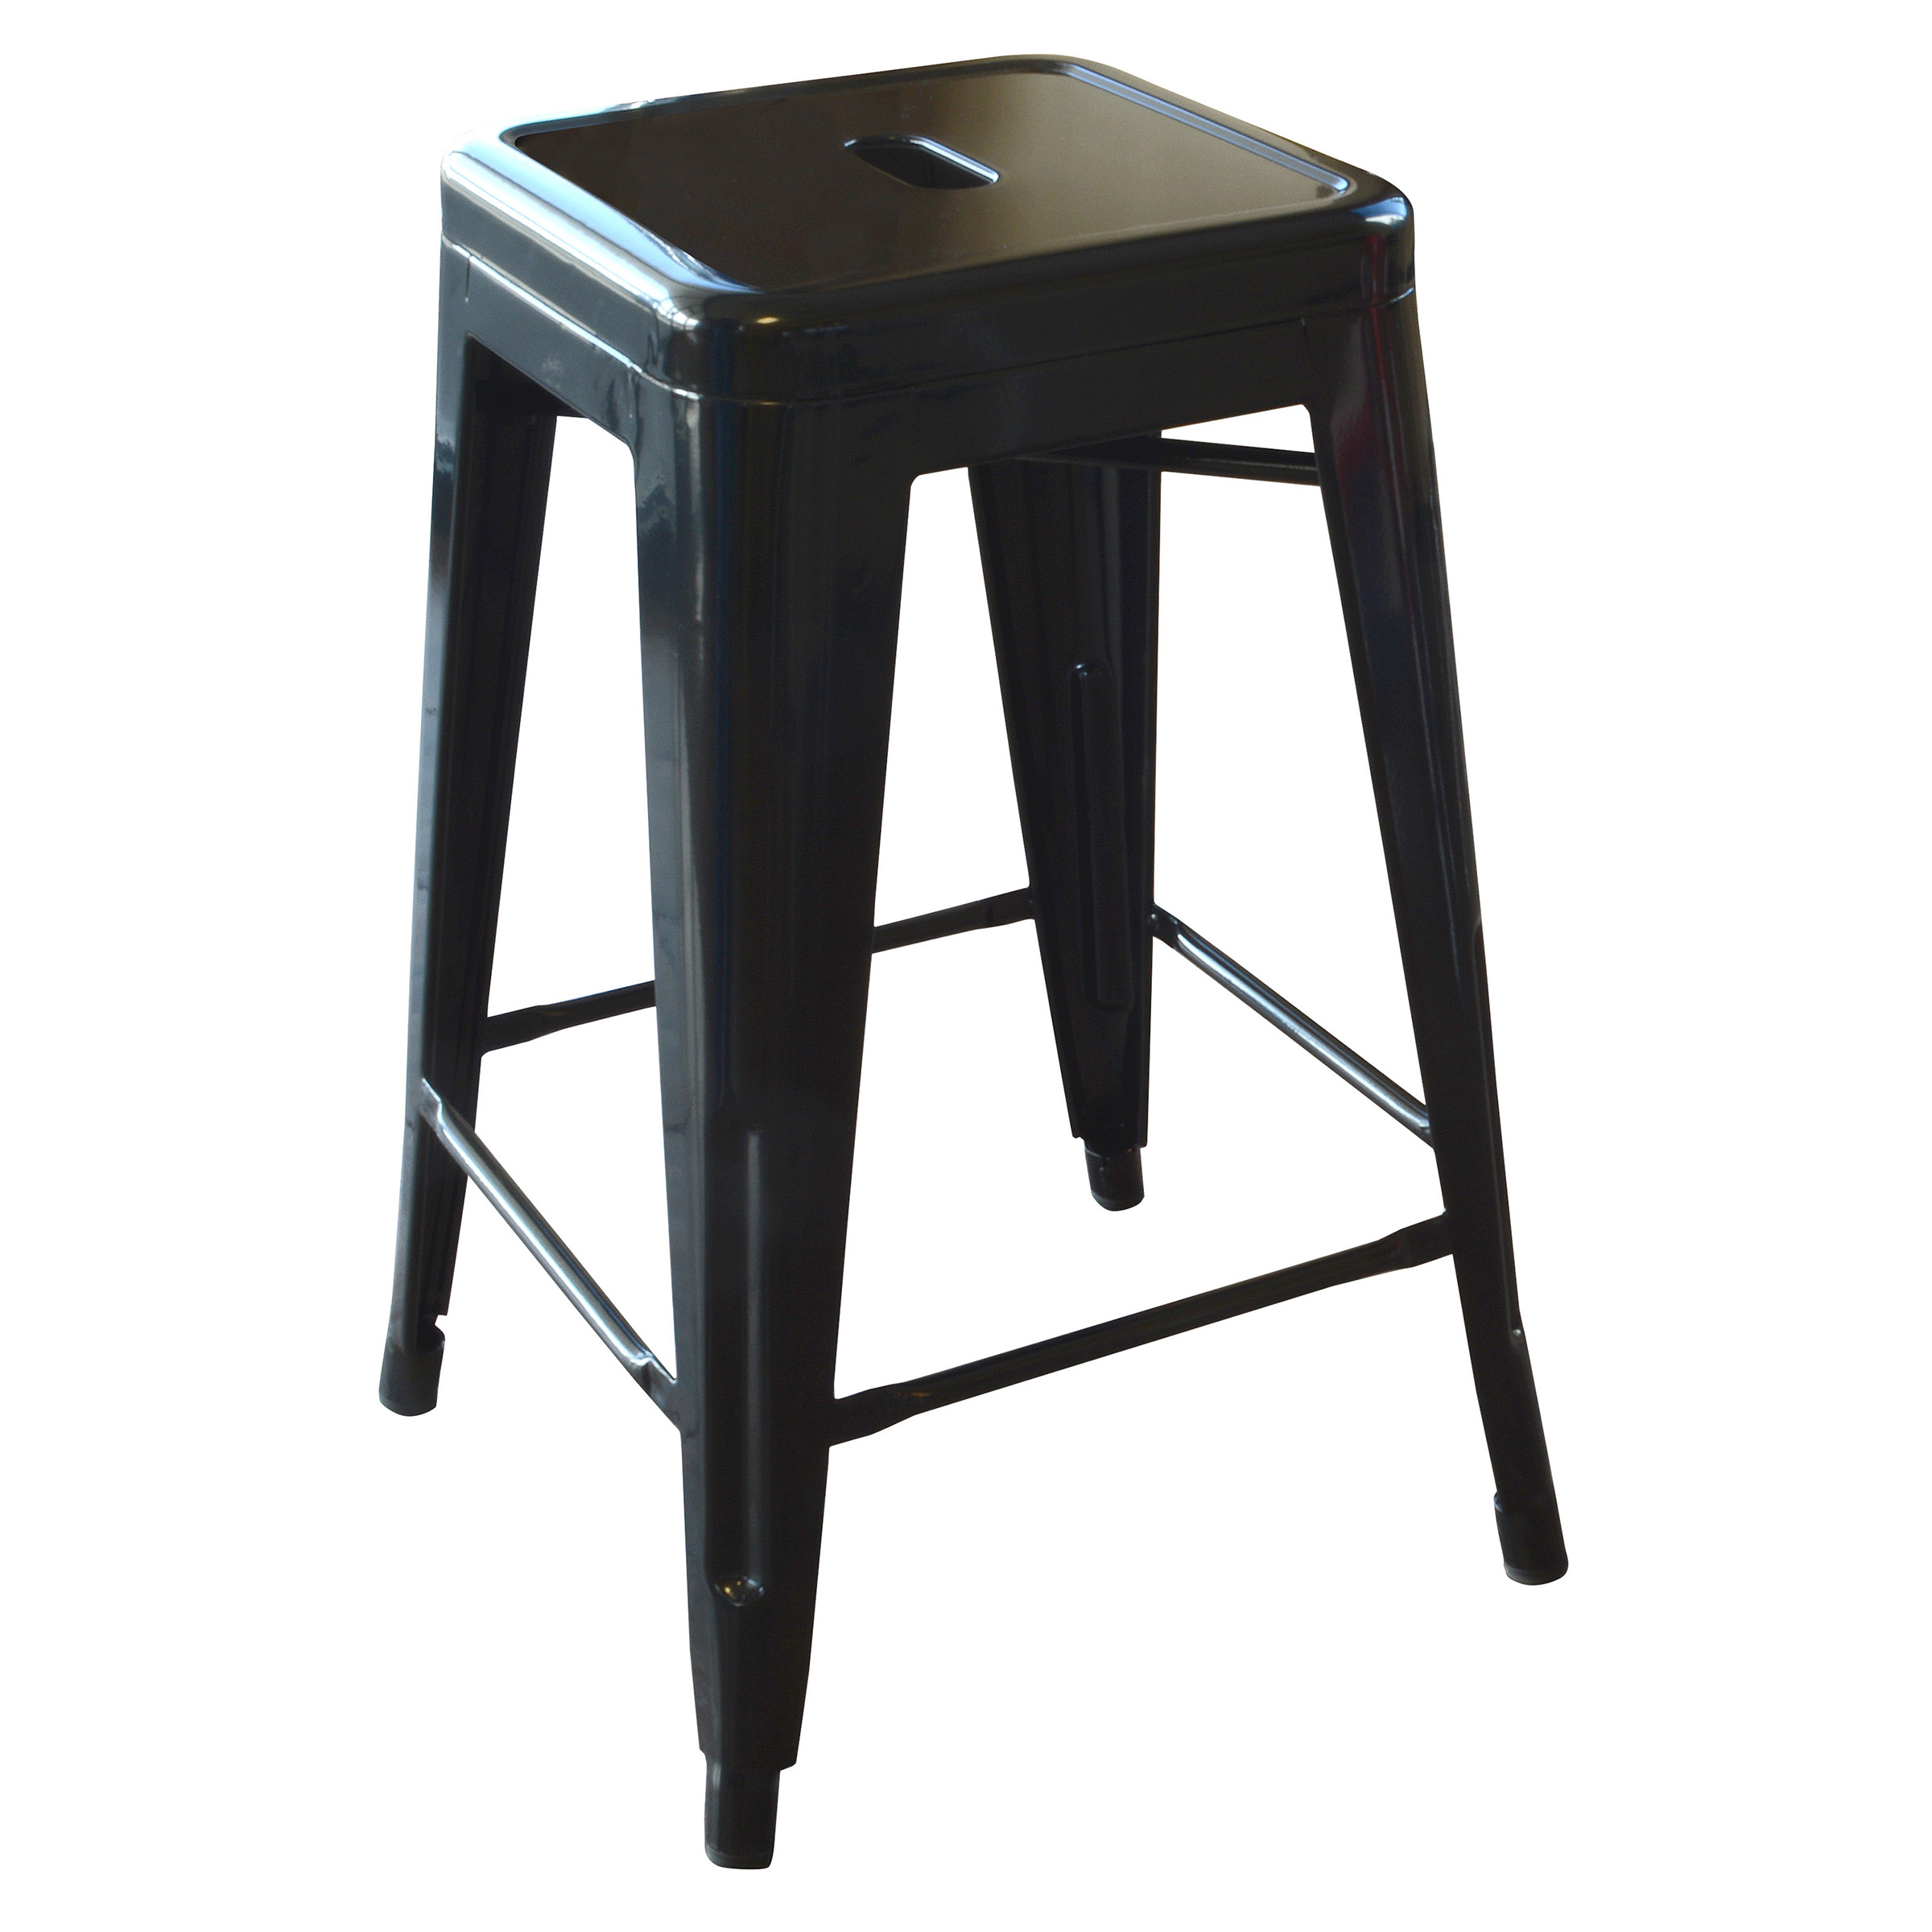 Amerihome Loft 24 Metal Bar Stool Black Walmart Com